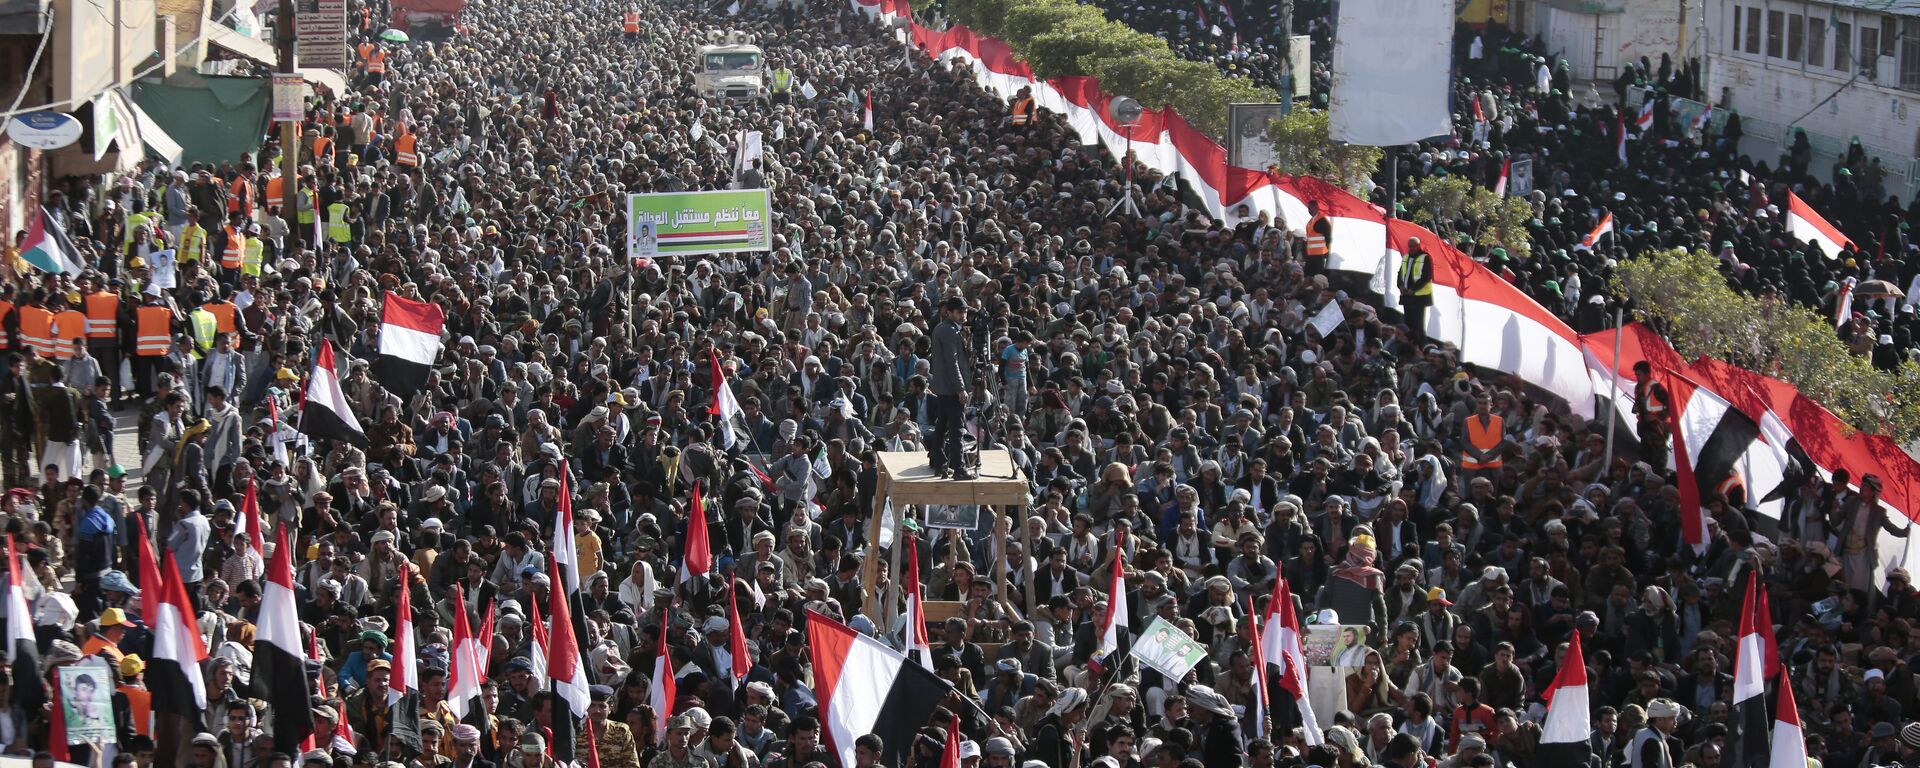 Supporters of Shiite Houthi rebels attend a rally in Sanaa, Yemen, Tuesday, Dec. 5, 2017. The killing of Yemen's ex-President Ali Abdullah Saleh by the country's Shiite rebels on Monday, as their alliance crumbled, has thrown the nearly three-year civil war into unpredictable new chaos. - Sputnik Italia, 1920, 20.06.2021